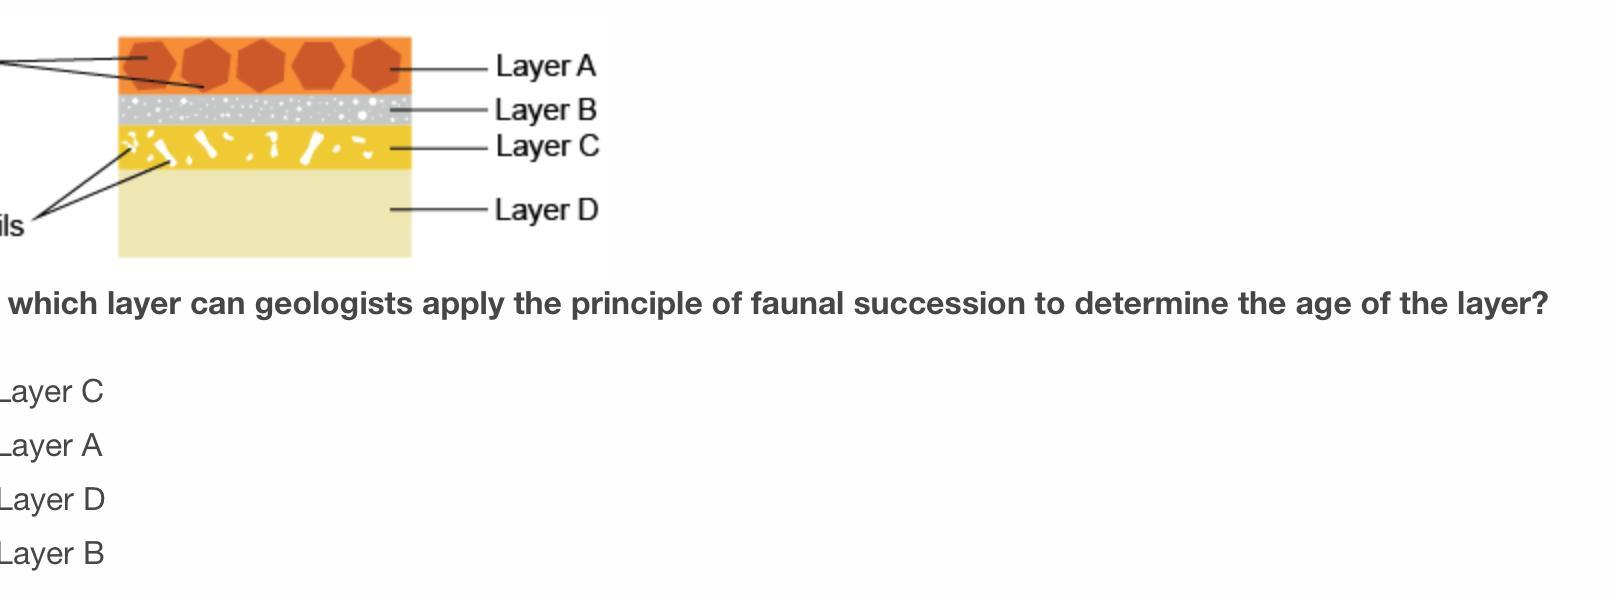 To which layer can geologists apply the principle of faunal